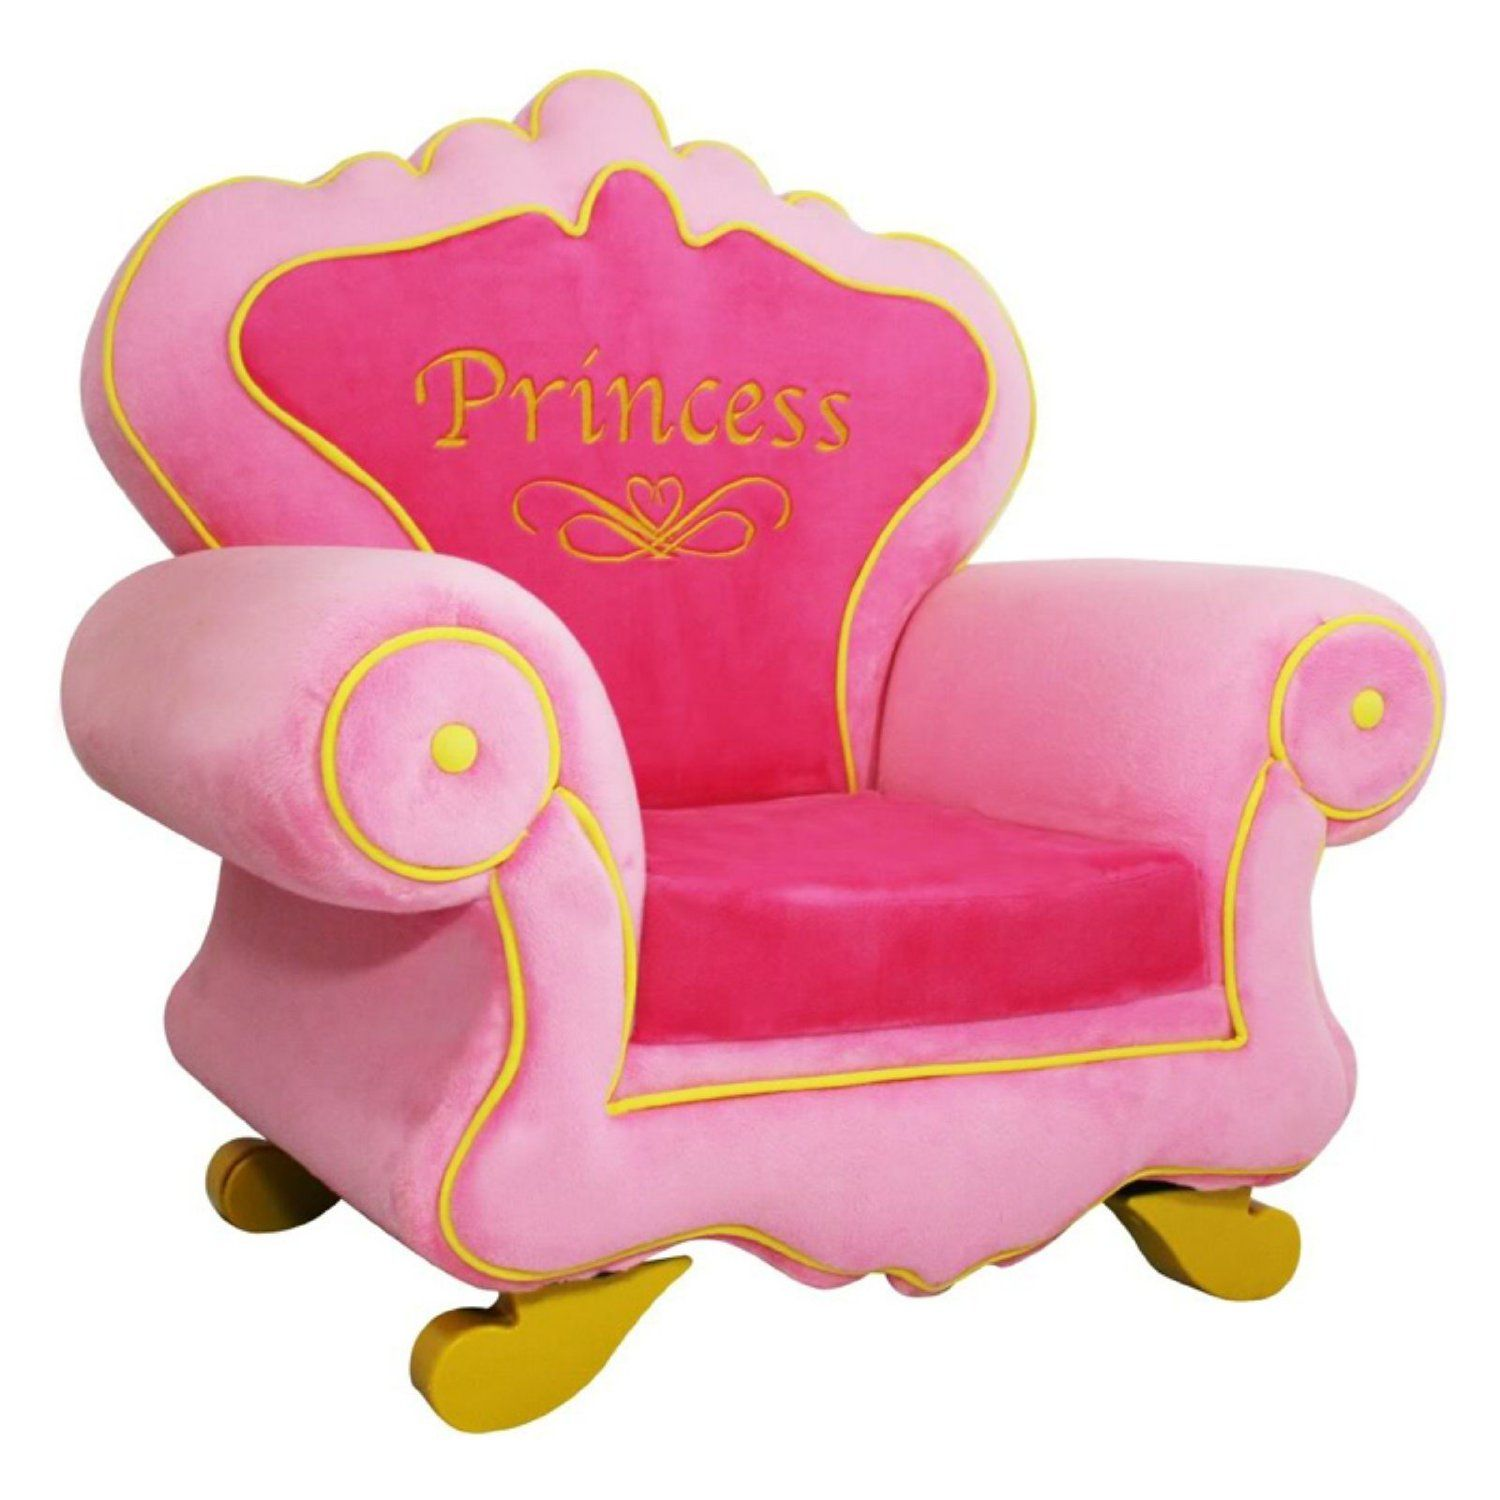 Marvelous Harmony Kids Royal Princess Chair Groovy Kids Decor Pabps2019 Chair Design Images Pabps2019Com